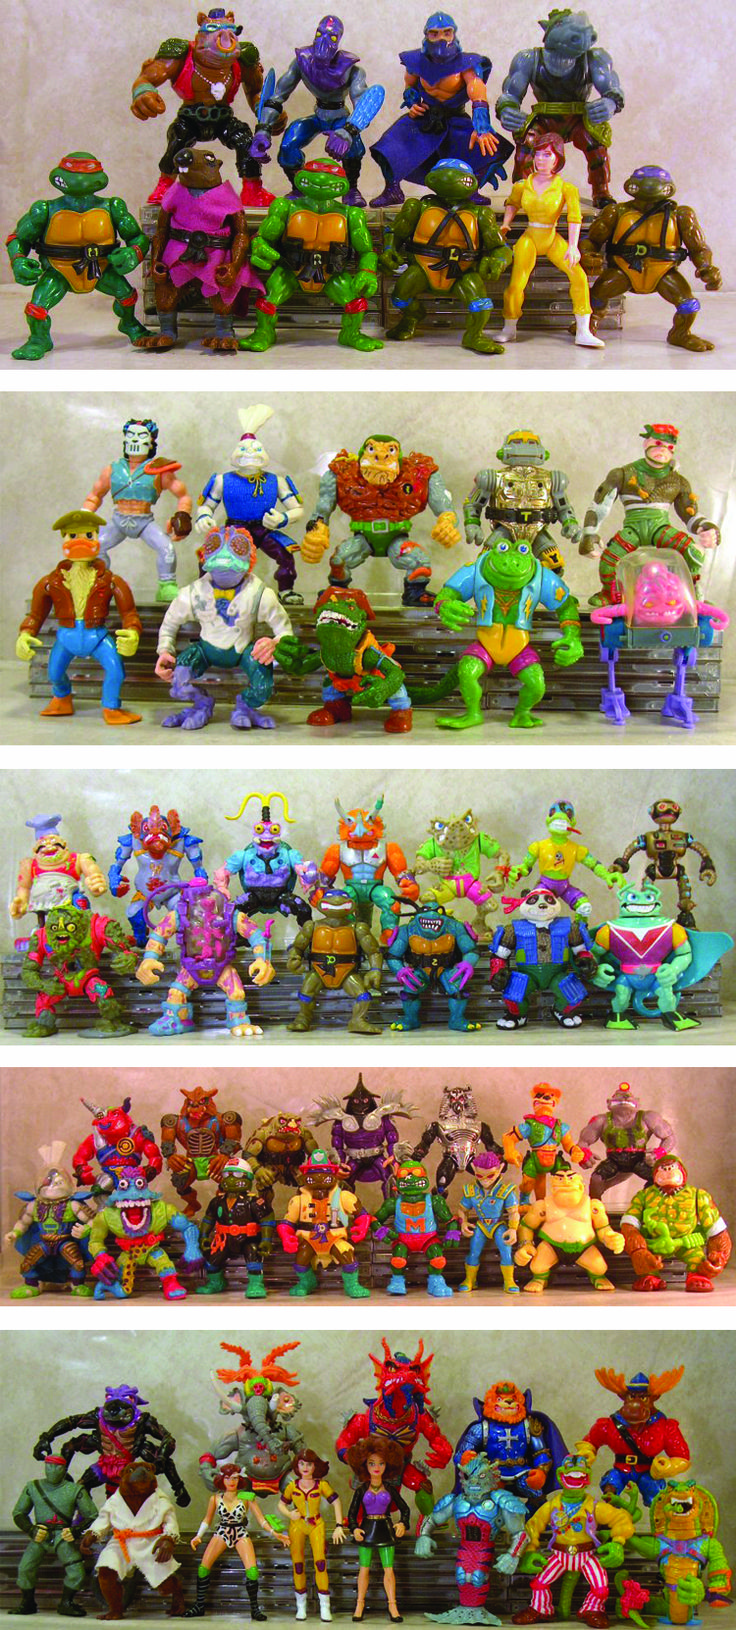 Where Can I Find Ninja Turtle Toys : Best ninja turtles action figures ideas on pinterest